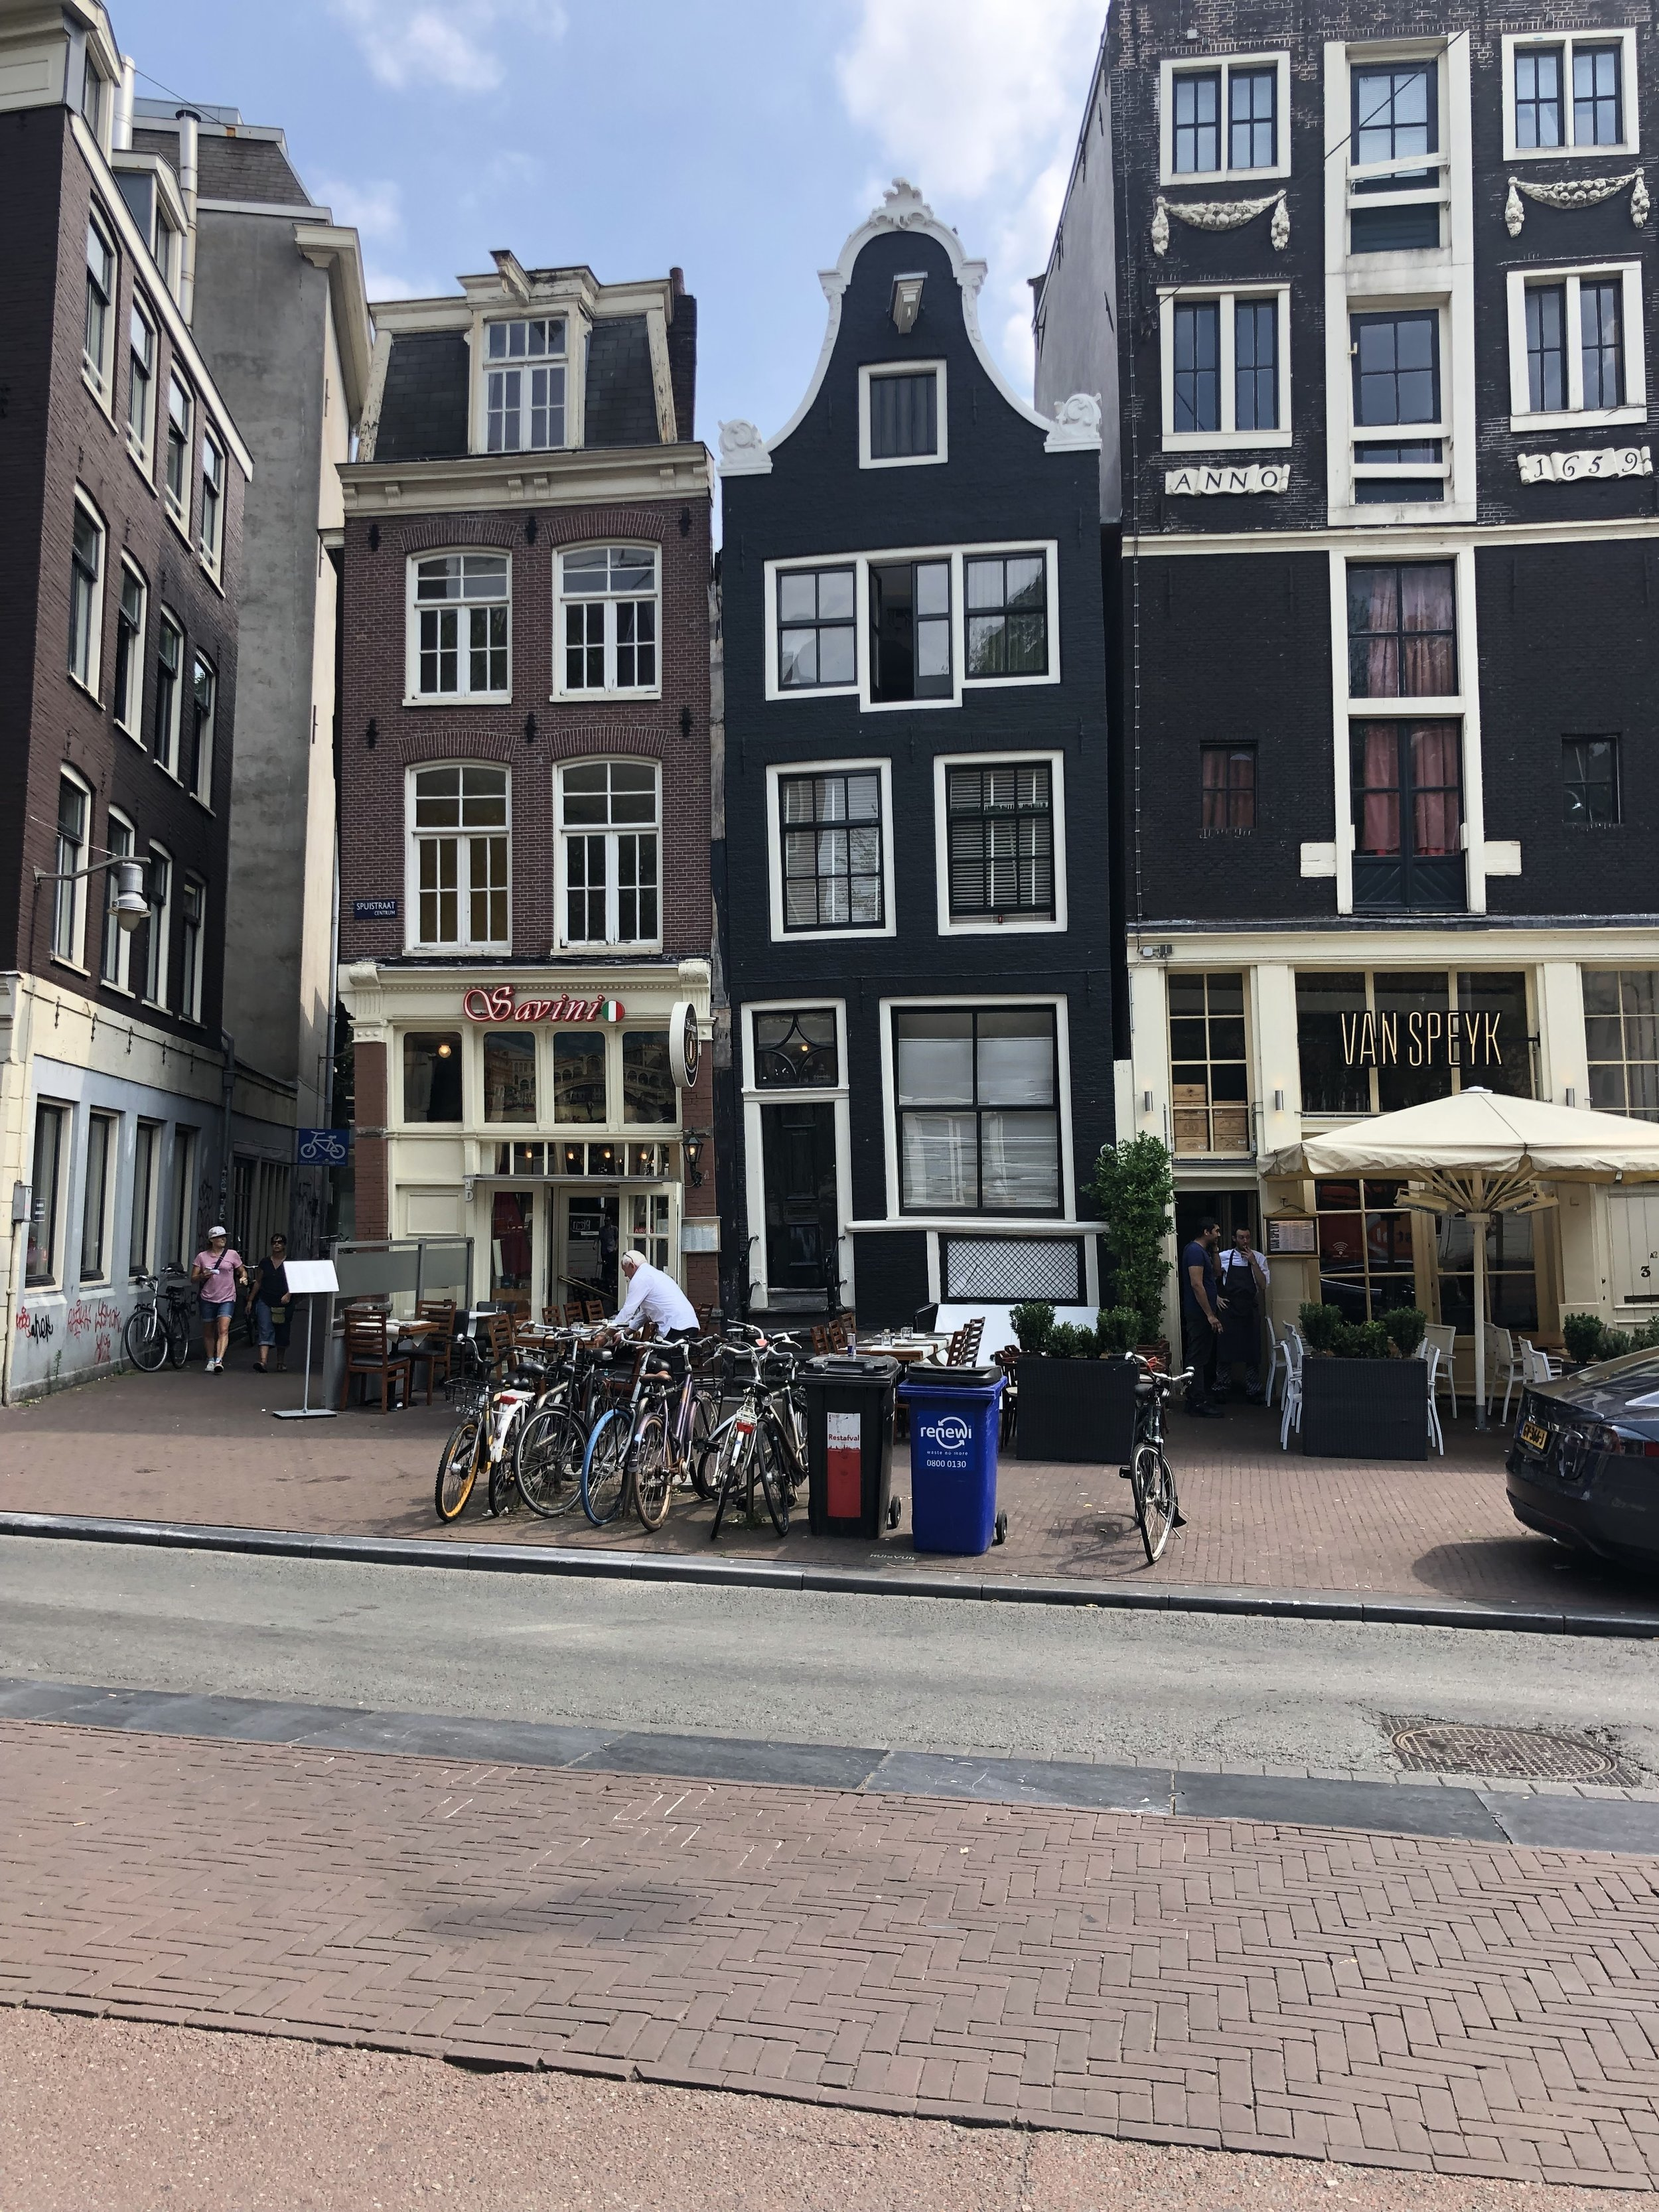 Many building in Amsterdam were noticeably leaning in one direction or another. We were told that over the years the foundations had sunk causing the lean.